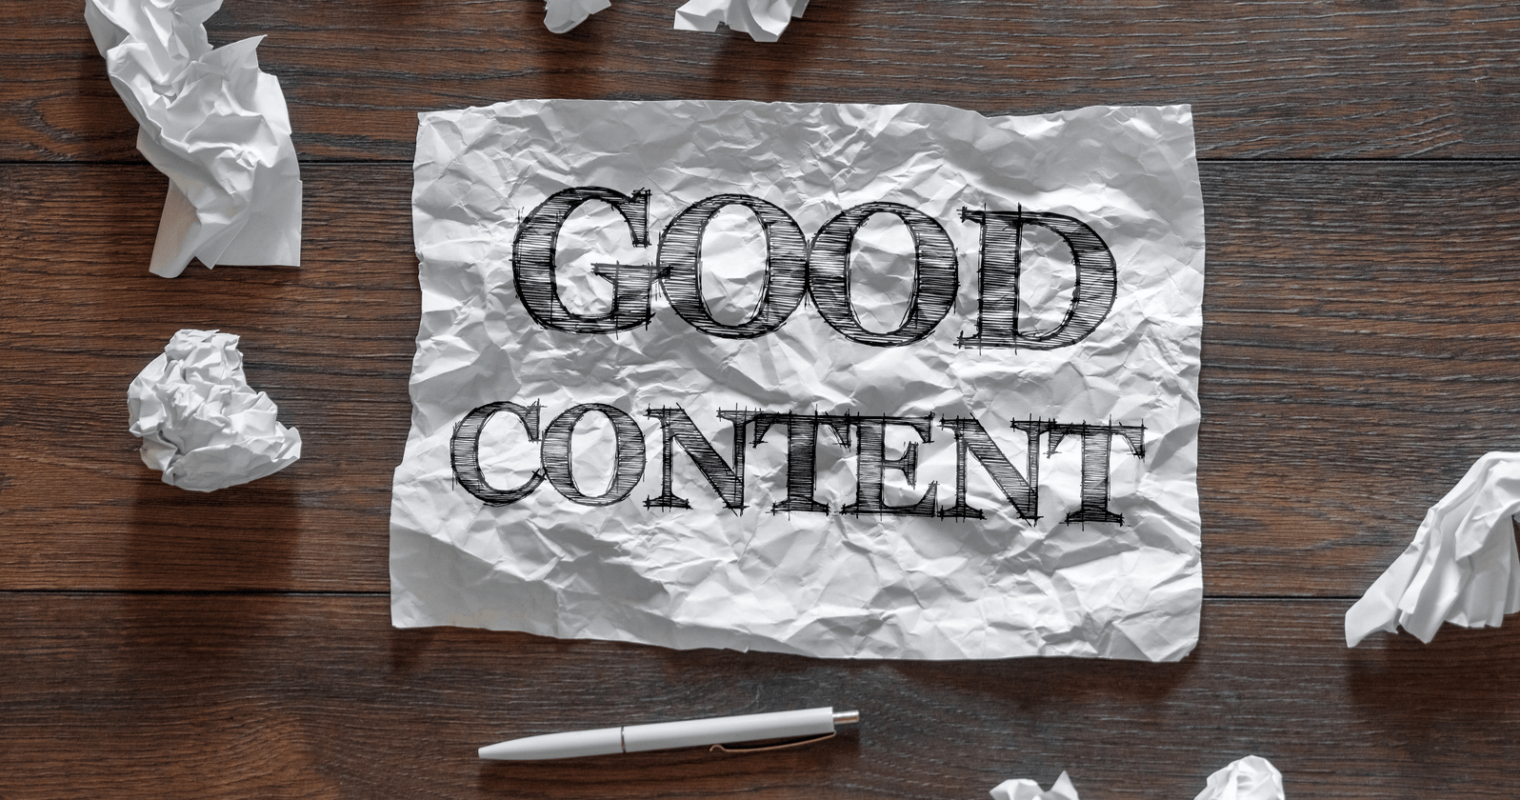 Google Suggests Reviewing Quality Rater Guidelines for Info About Good Content